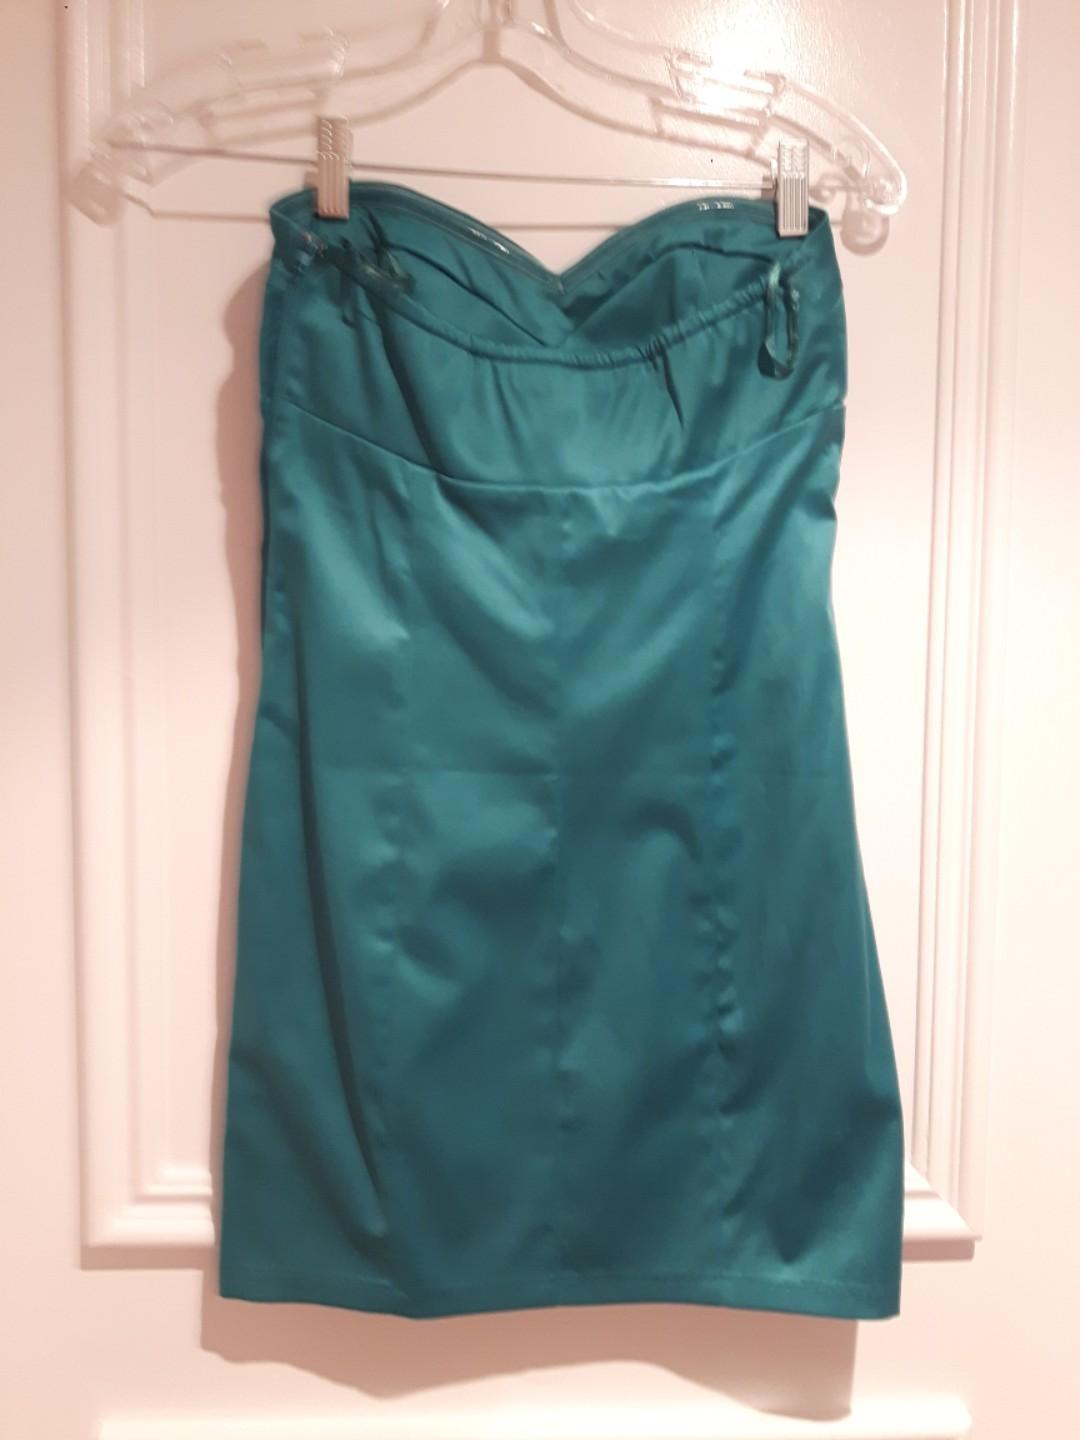 LOWERED:Strapless Dress Teal/Turquoise shaping bodycon Size Small Padded